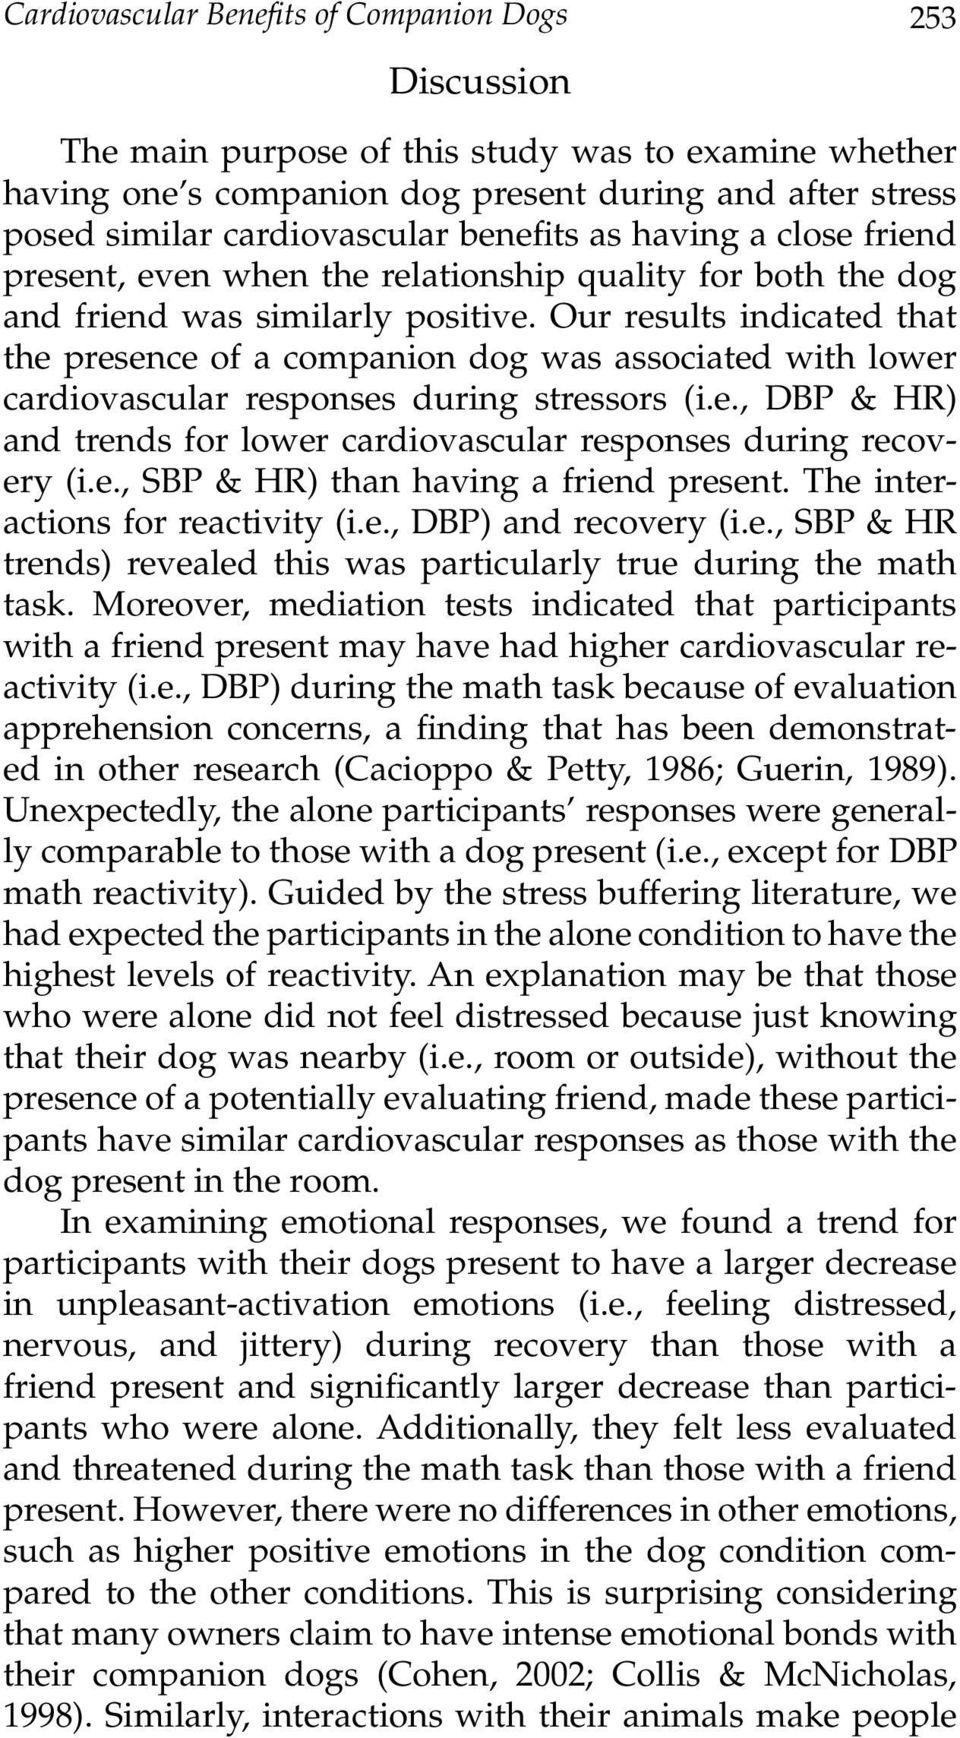 Our results indicated that the presence of a companion dog was associated with lower cardiovascular responses during stressors (i.e., DBP & HR) and trends for lower cardiovascular responses during recovery (i.